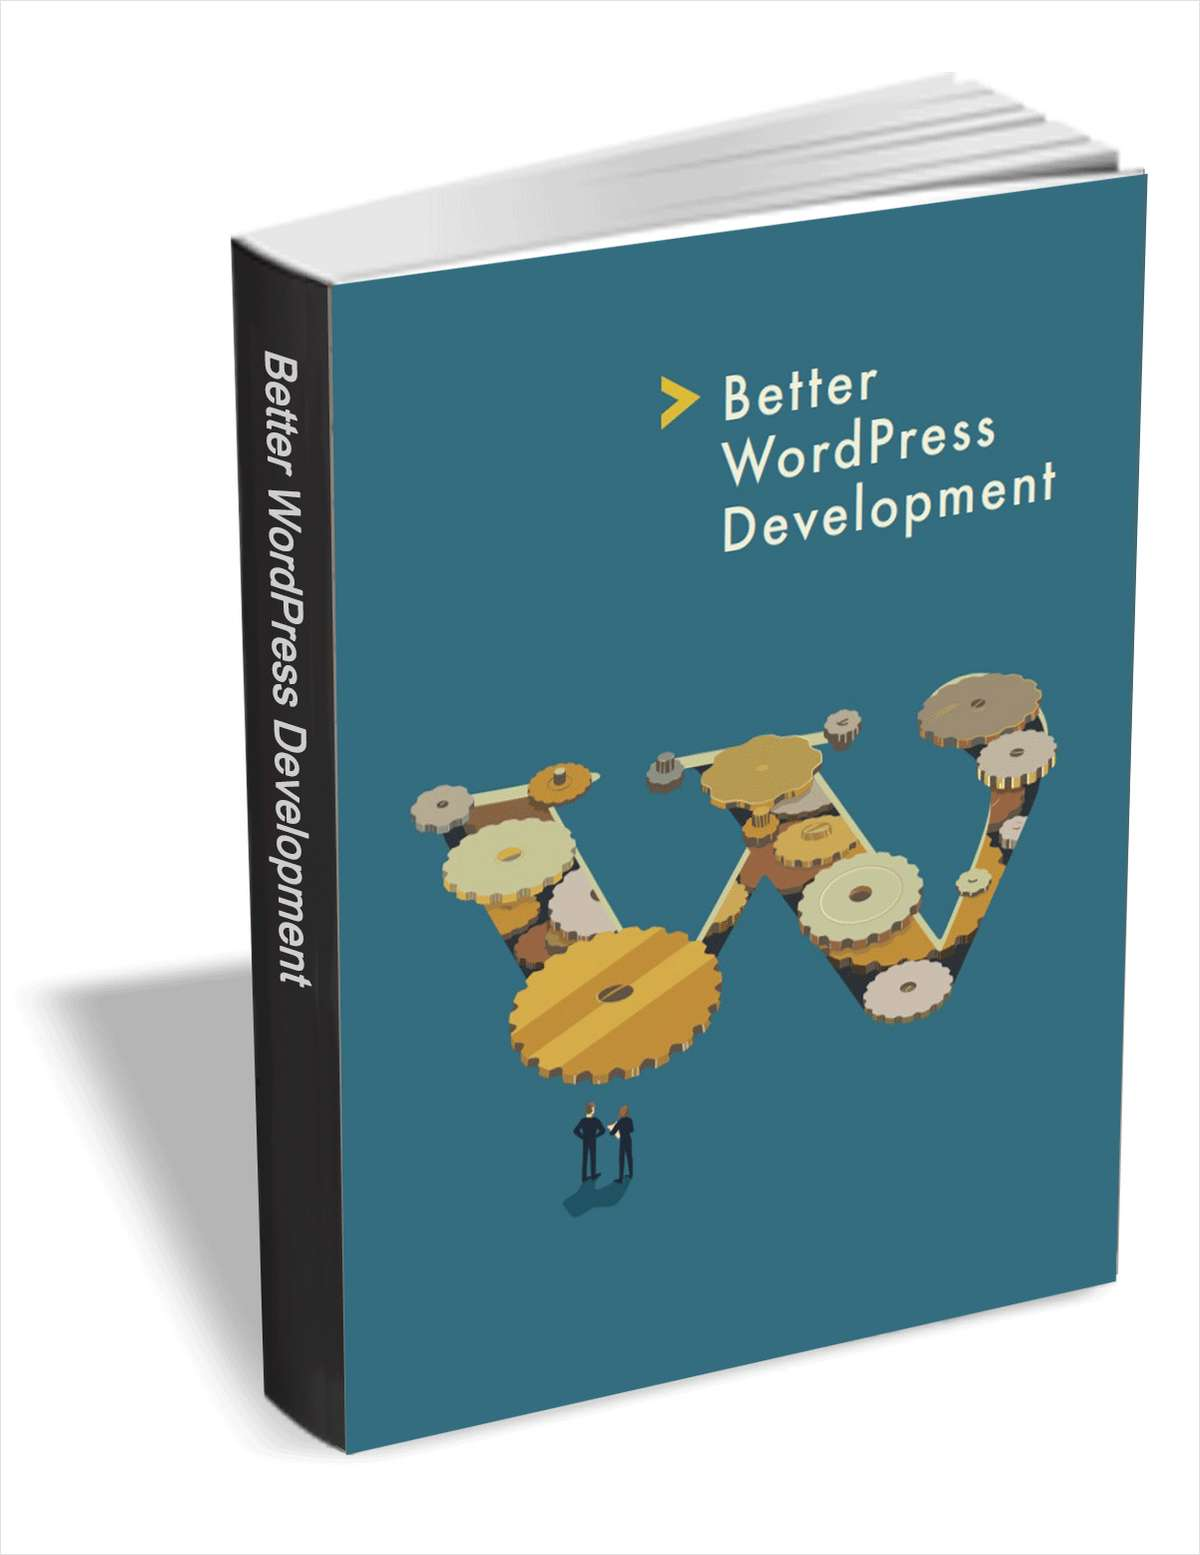 Better WordPress Development ($29 Value) FREE For a Limited Time Screenshot